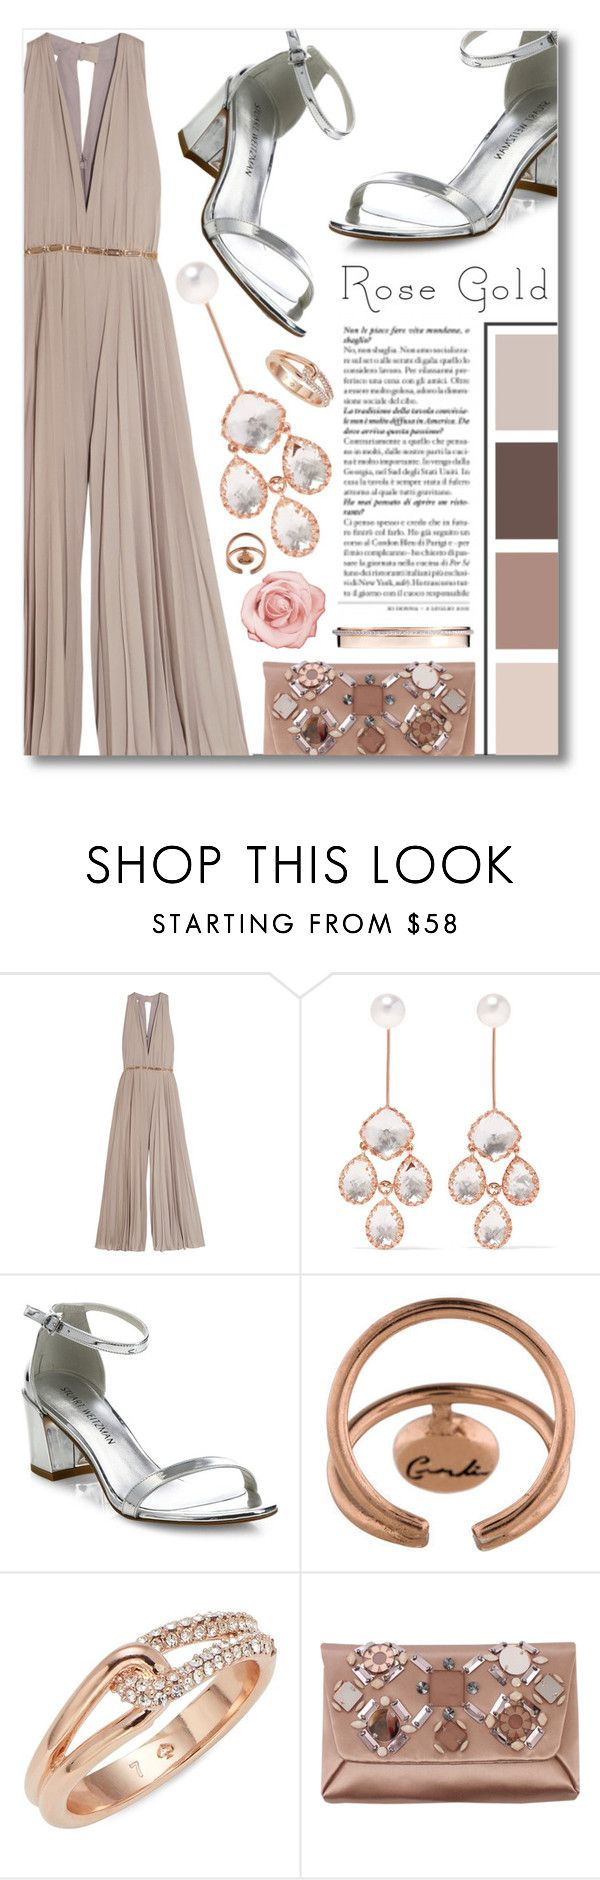 """Rose Gold"" by jleigh329 ❤ liked on Polyvore featuring Halston Heritage, Larkspur & Hawk, Stuart Weitzman, Cornelia Webb, Kate Spade, Lanvin and Messika"